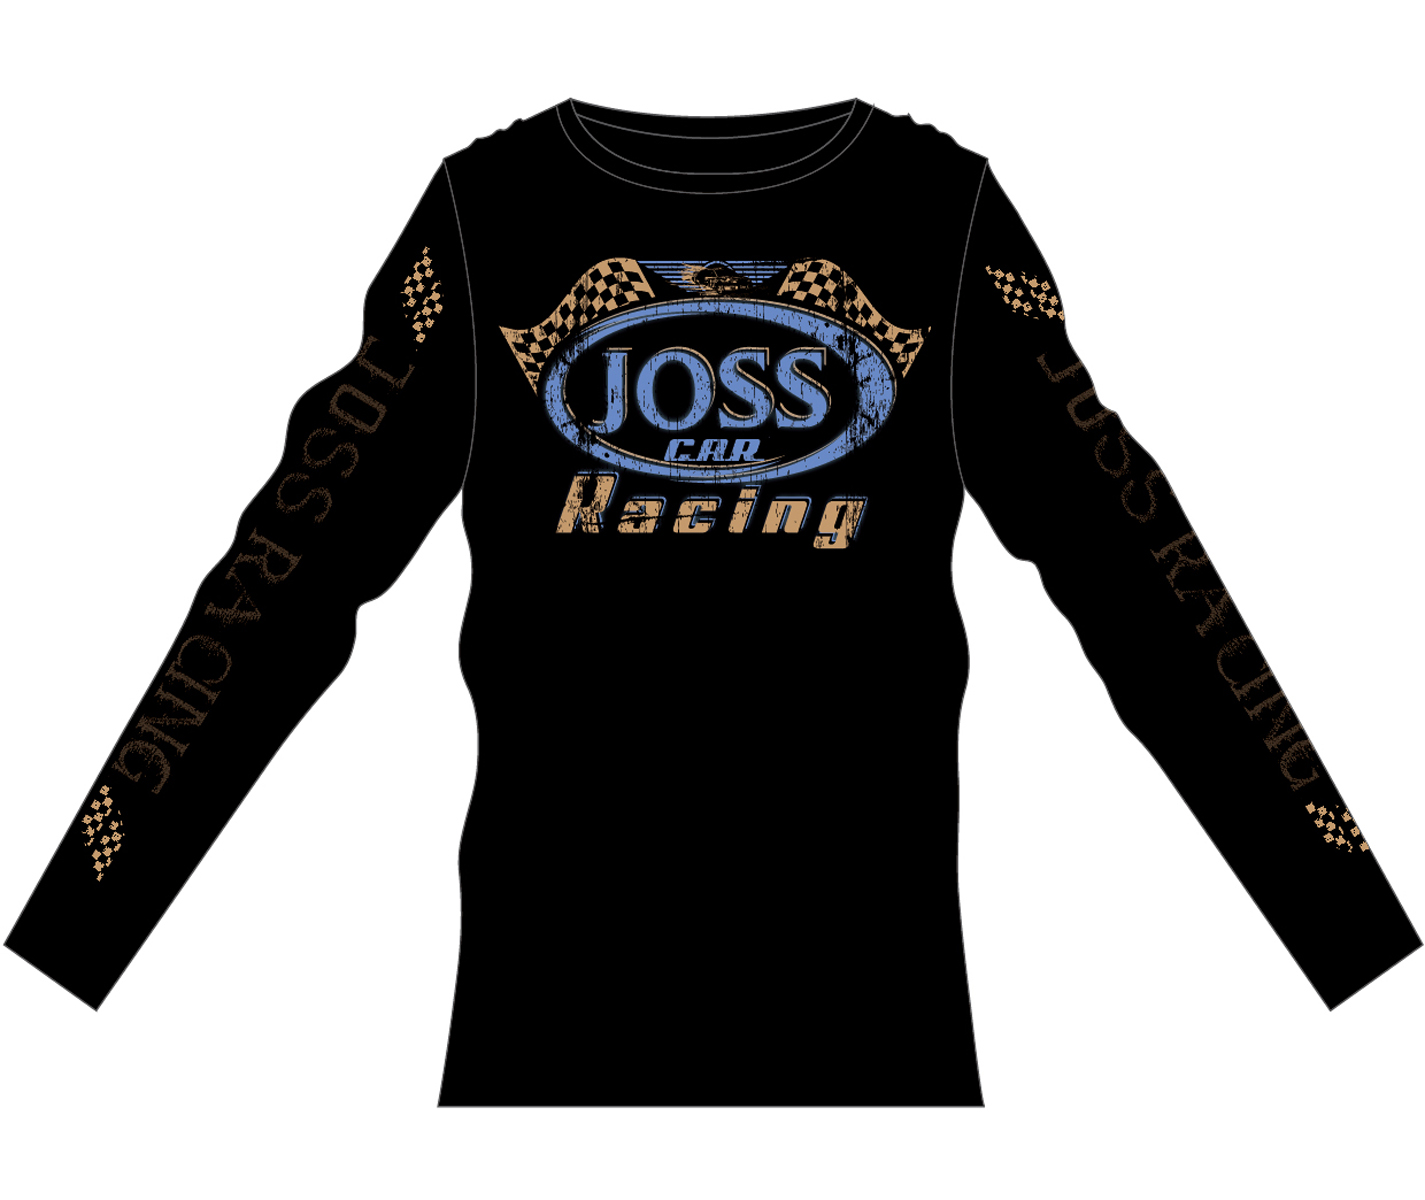 Serious professional t shirt design for matt joss by for Make photo t shirt online